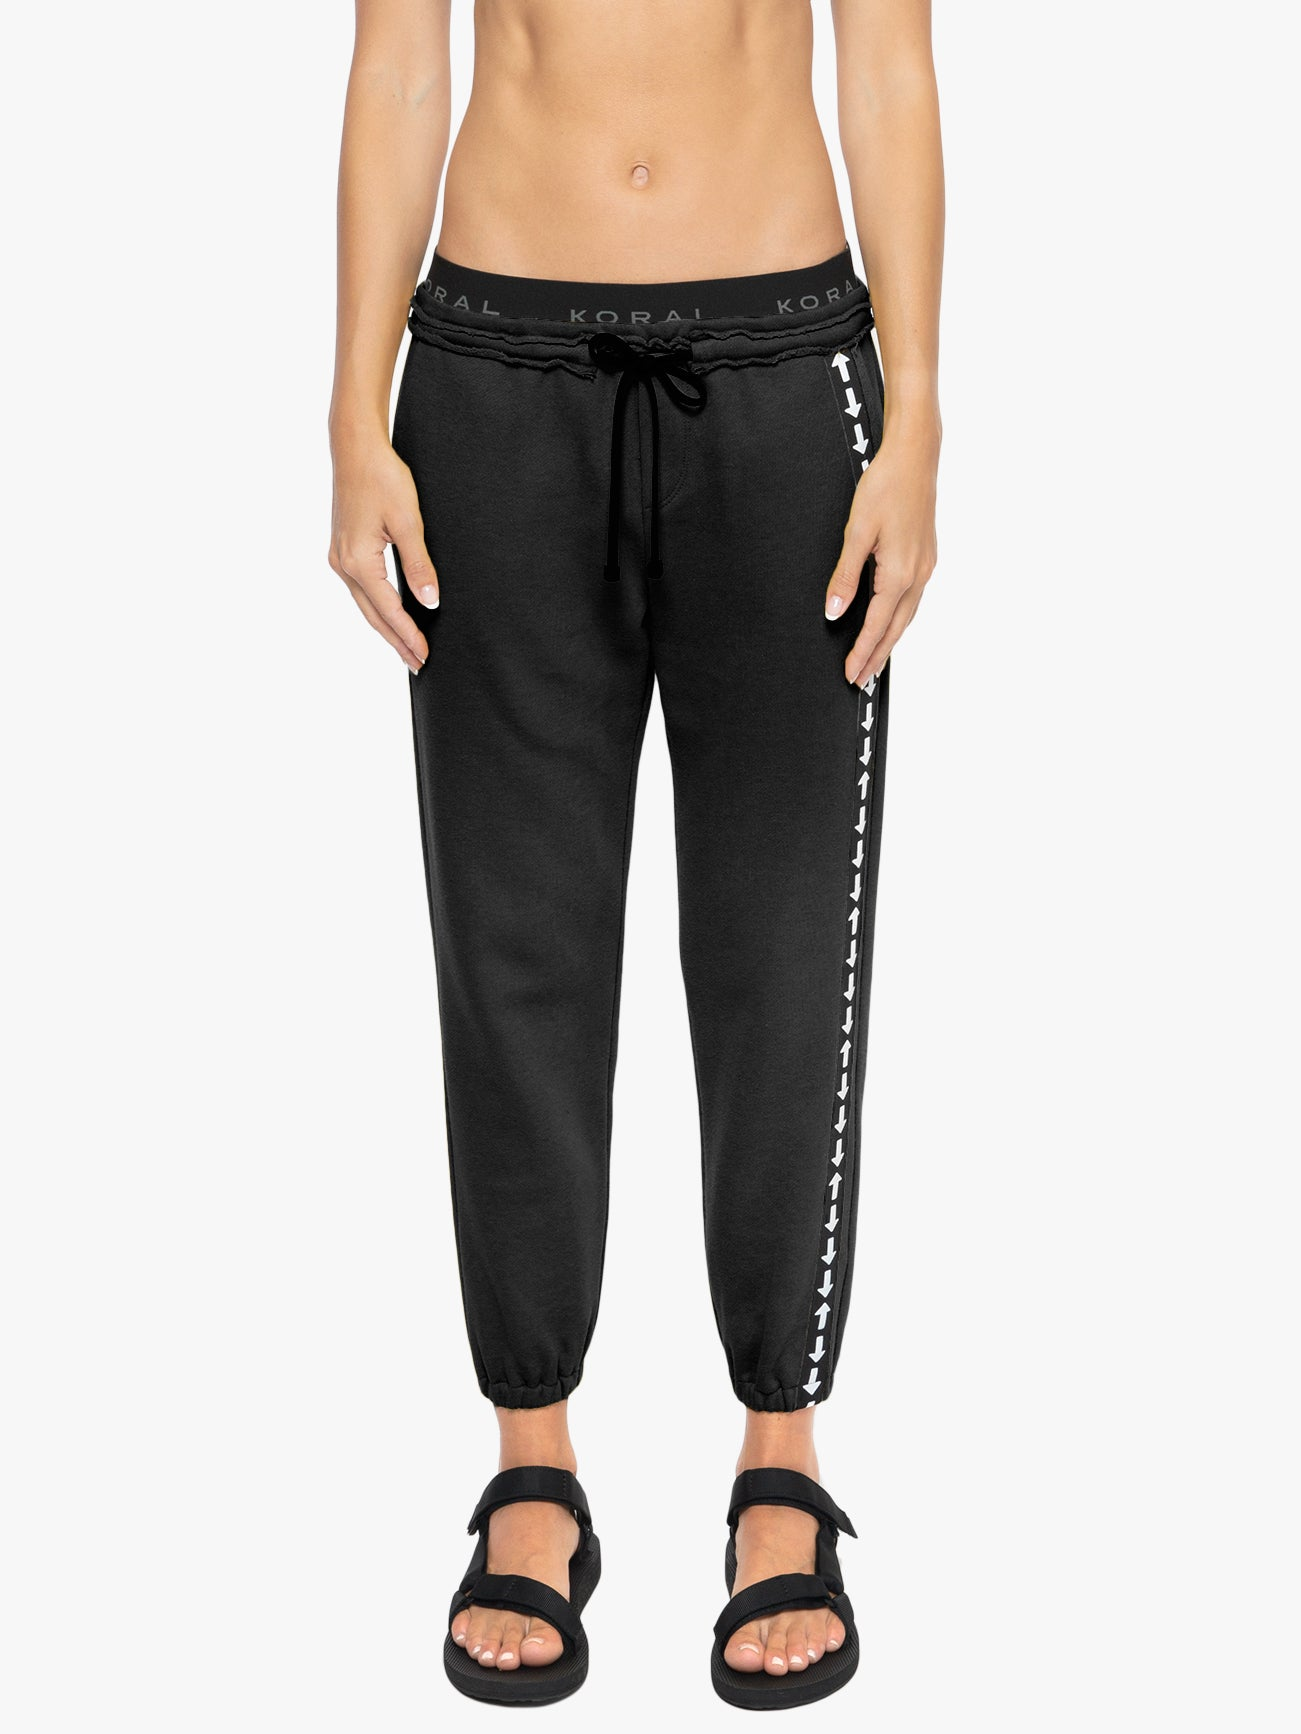 Napo Matte Sweatpants - Black